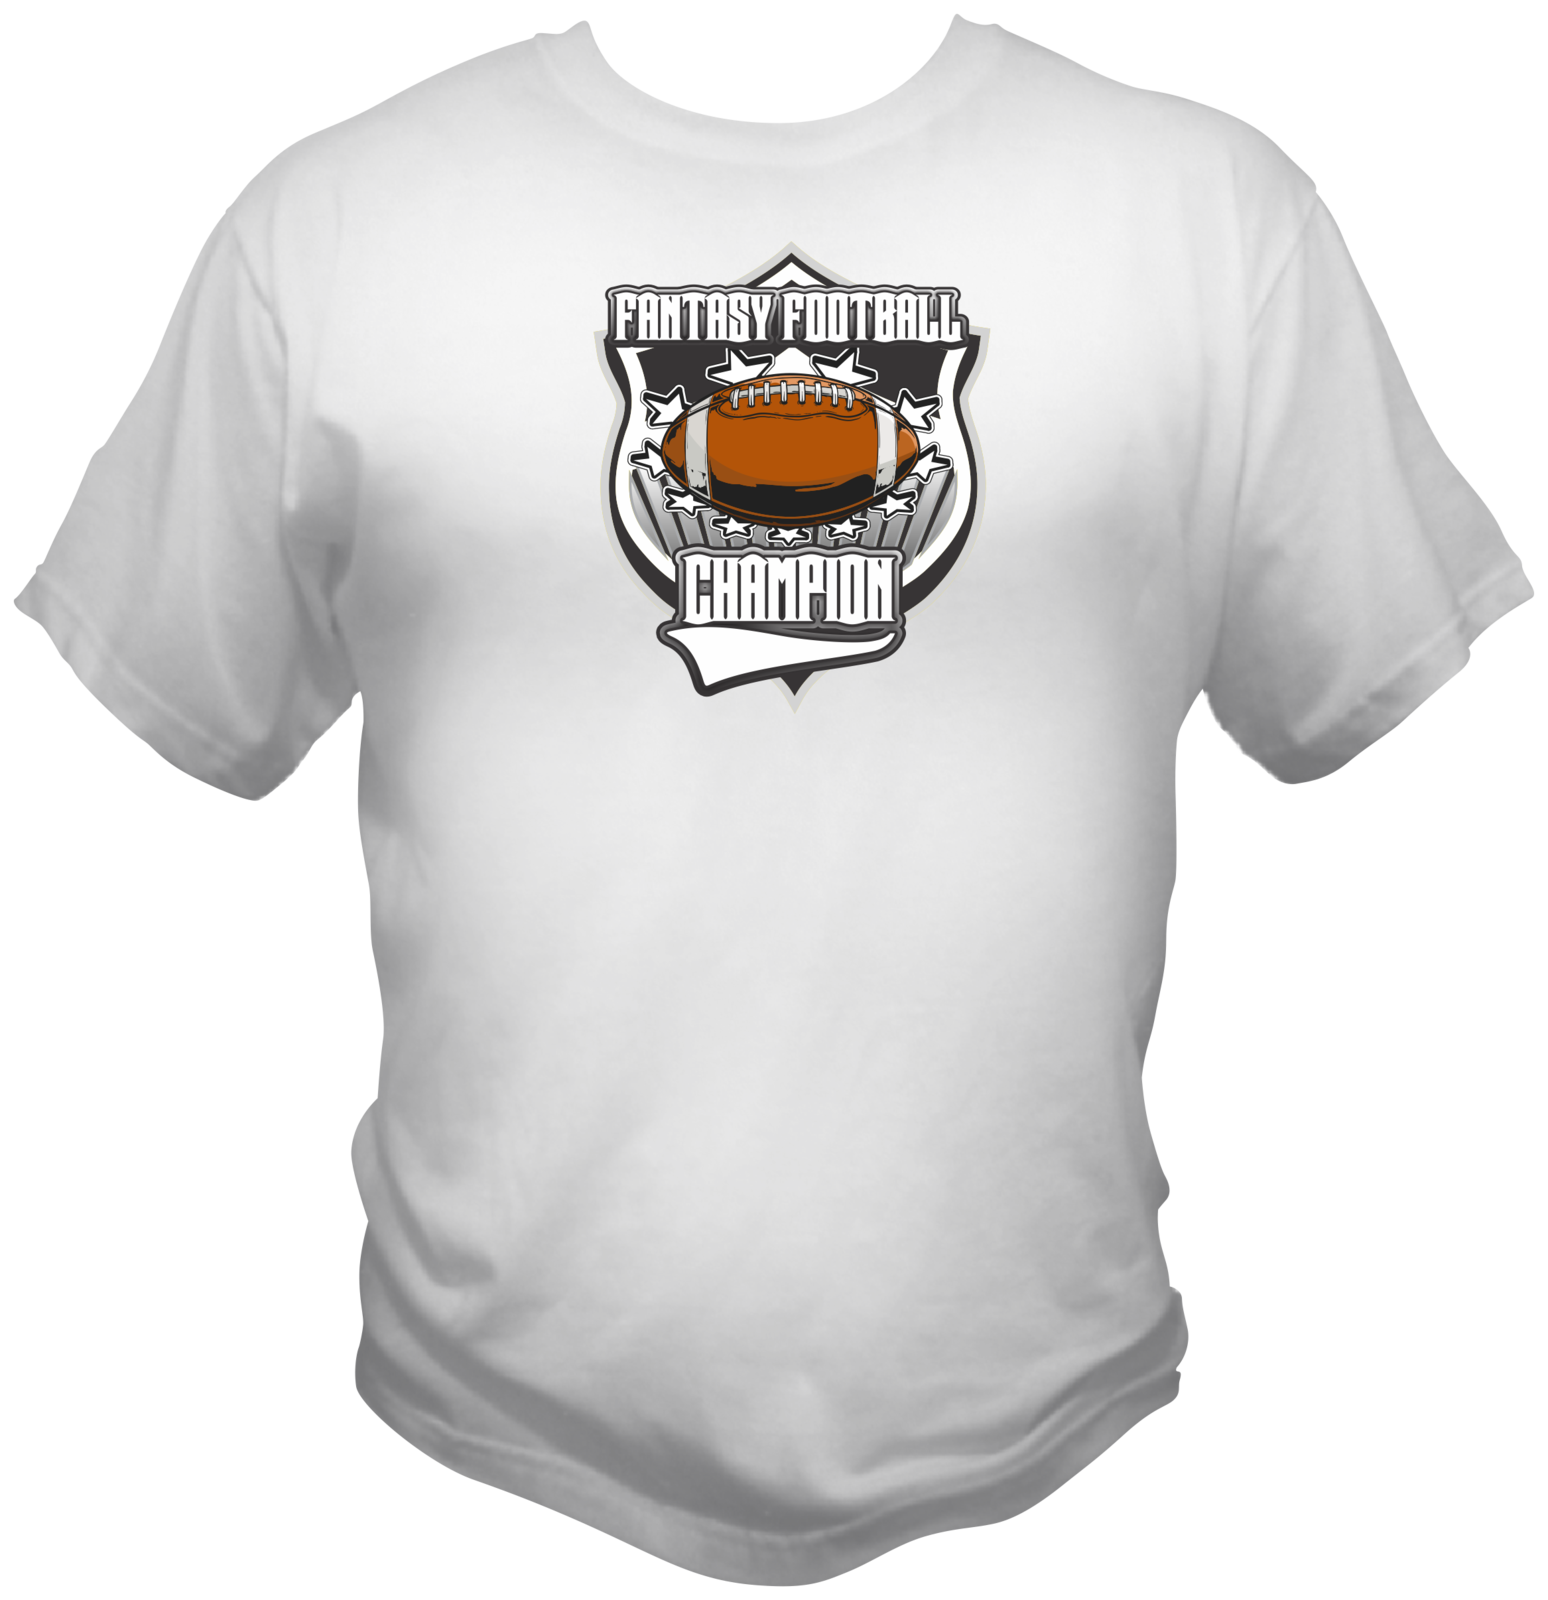 Footballfantasy white